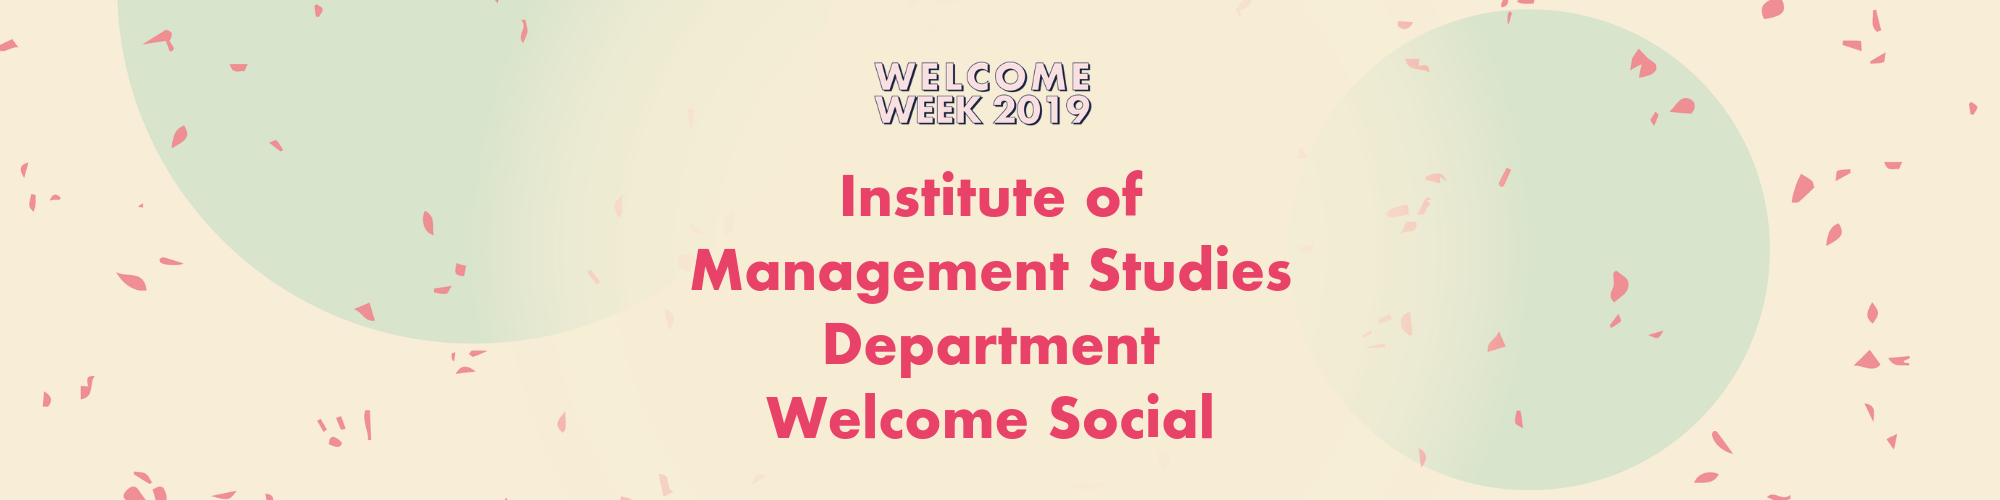 IMS Department Welcome Social